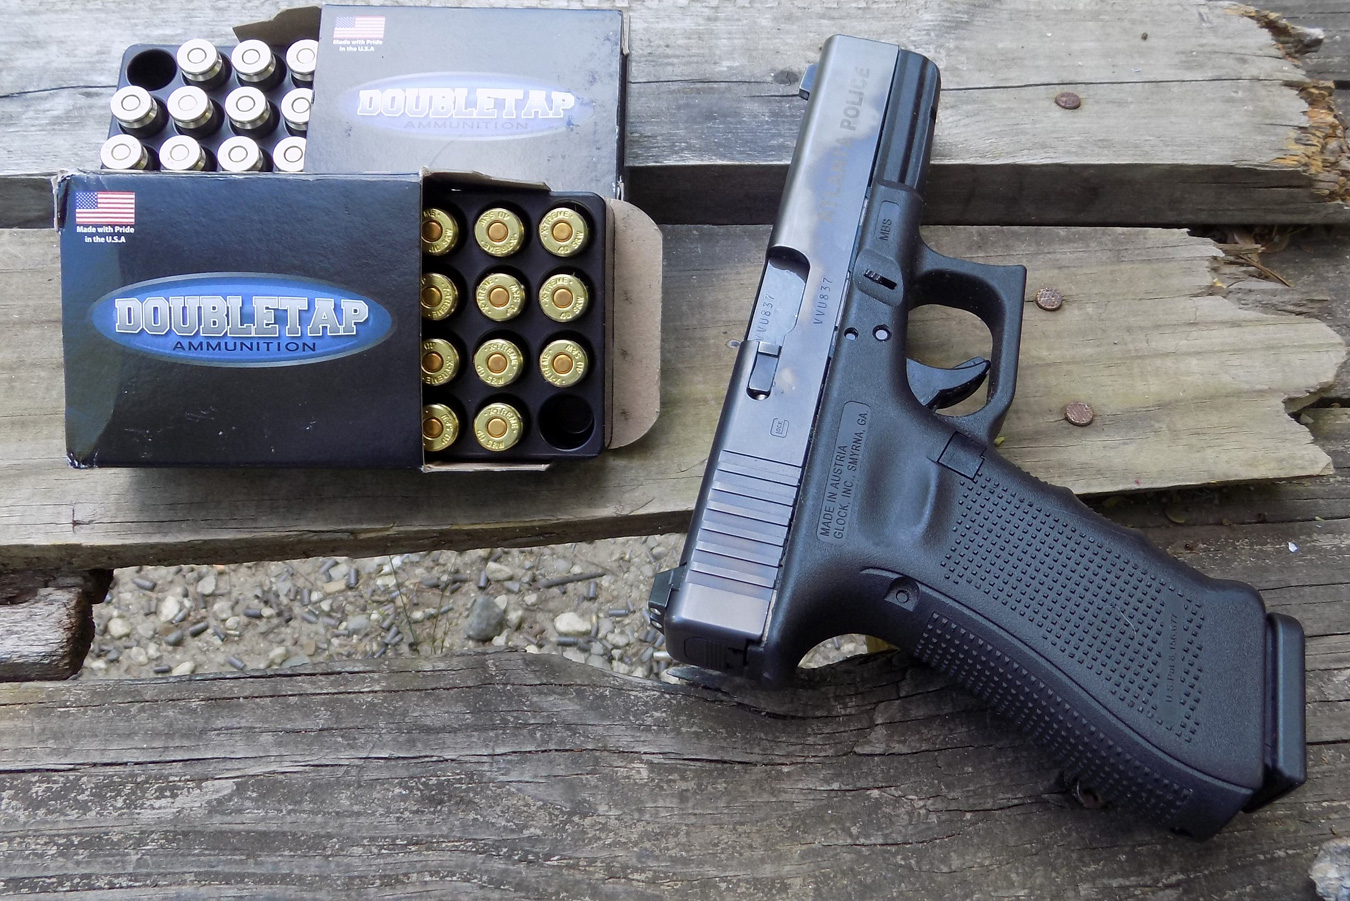 Glock 22 pistol with open box of Double Tap ammunition